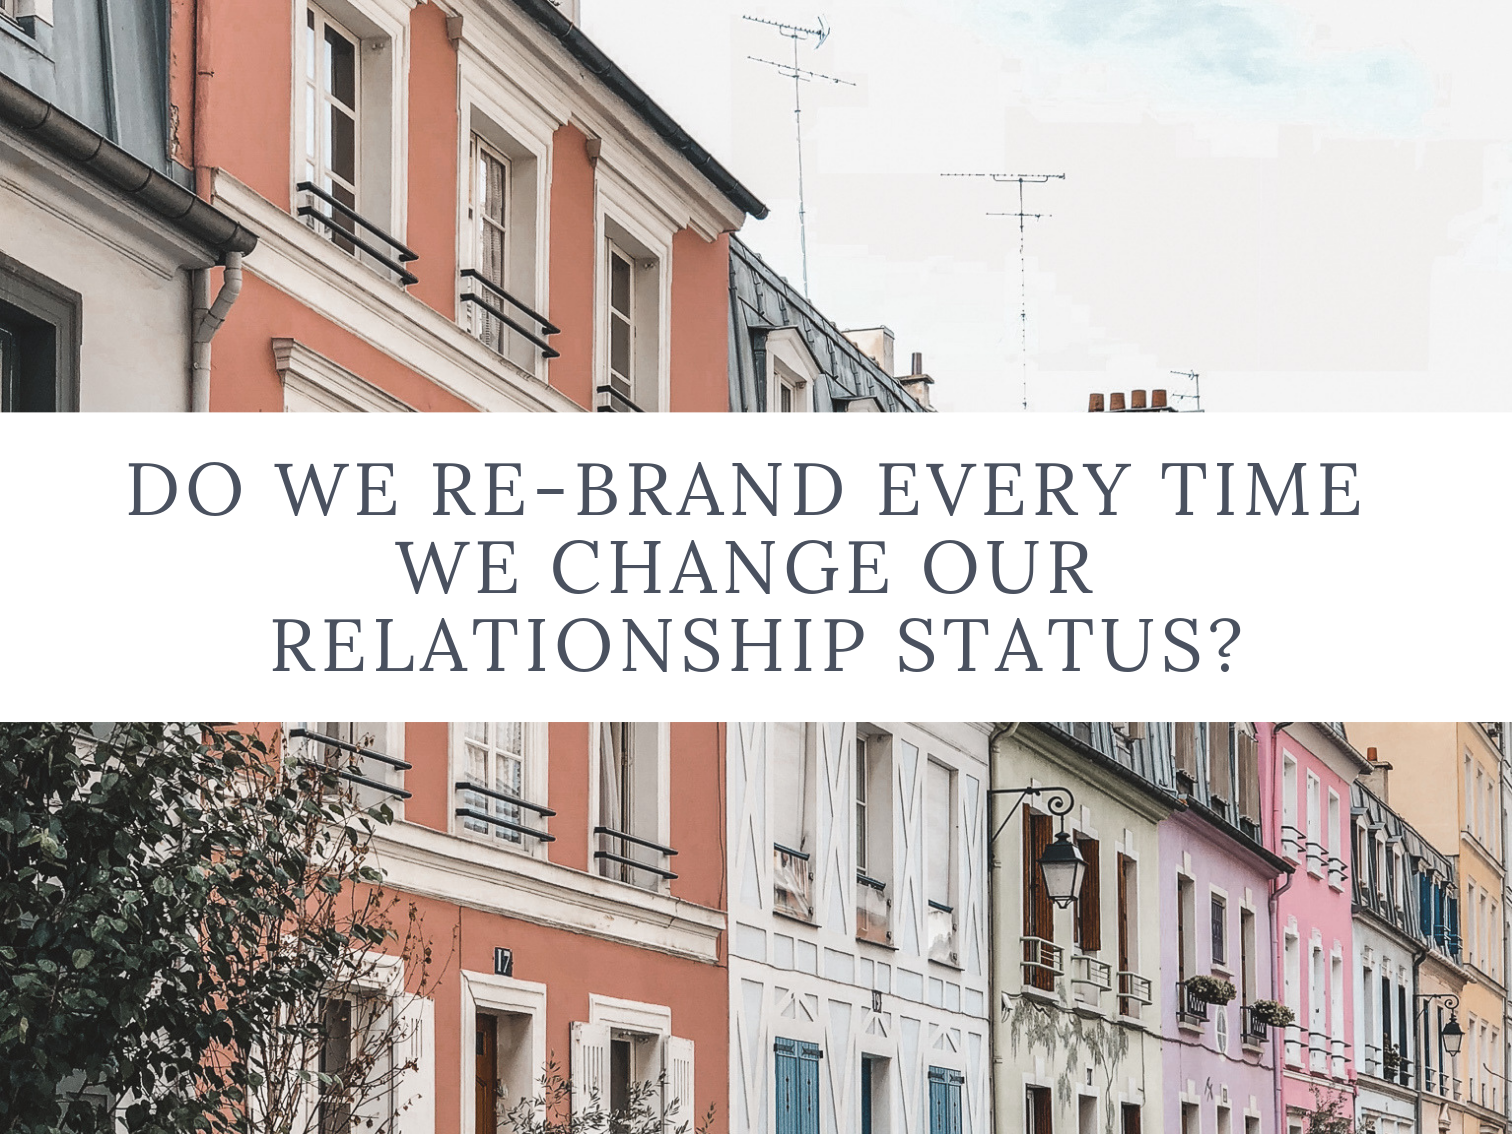 Do we re-brand every time we change our relationship status?